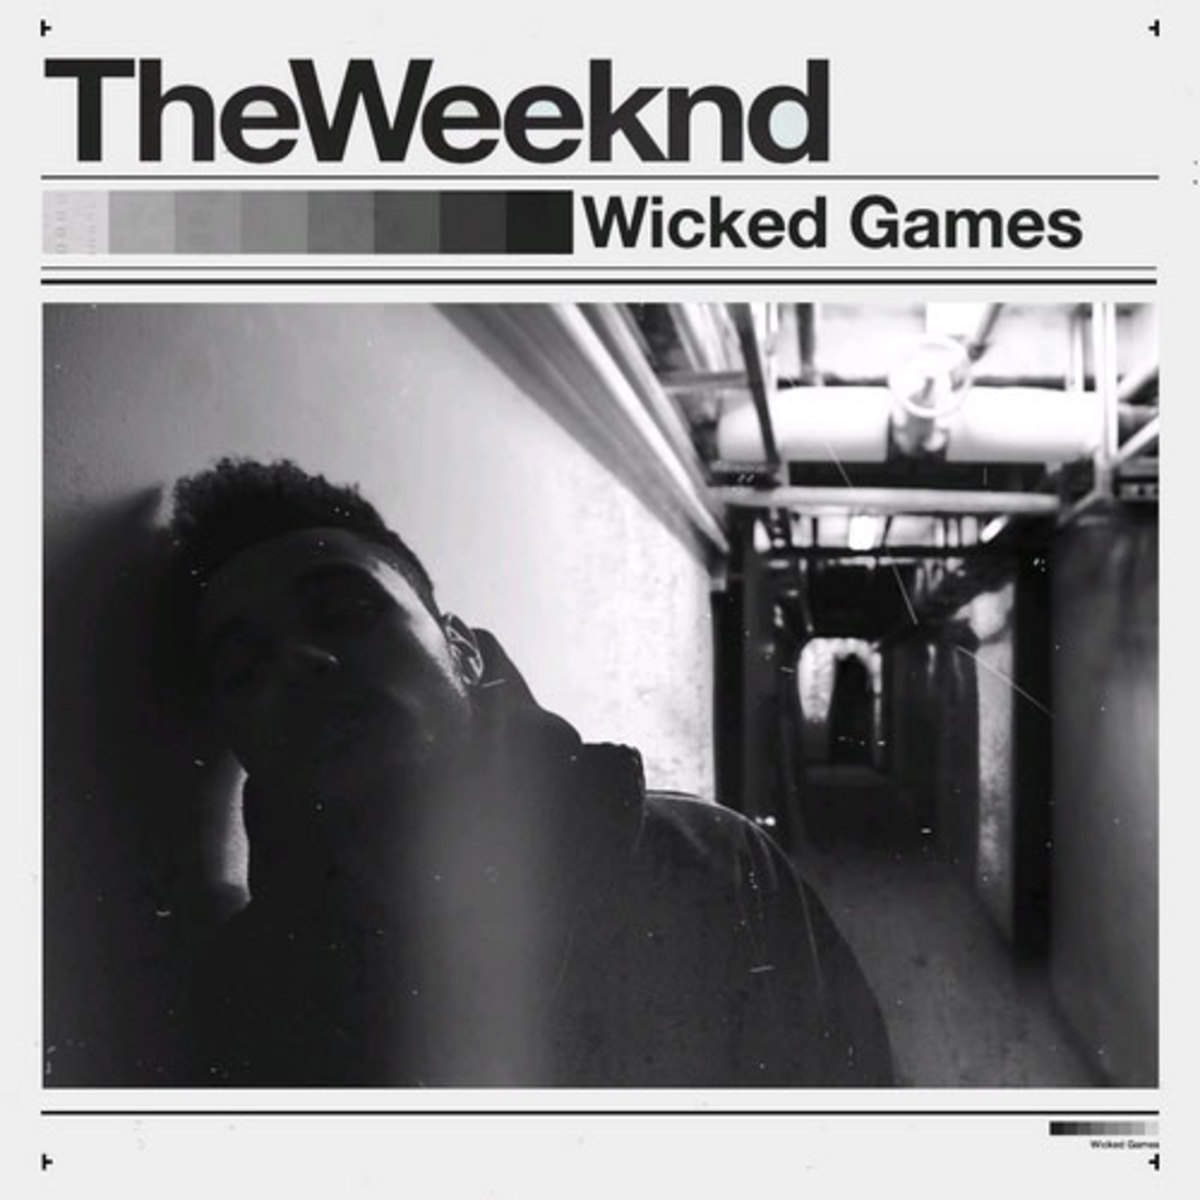 theweekend-wickedgames.jpg